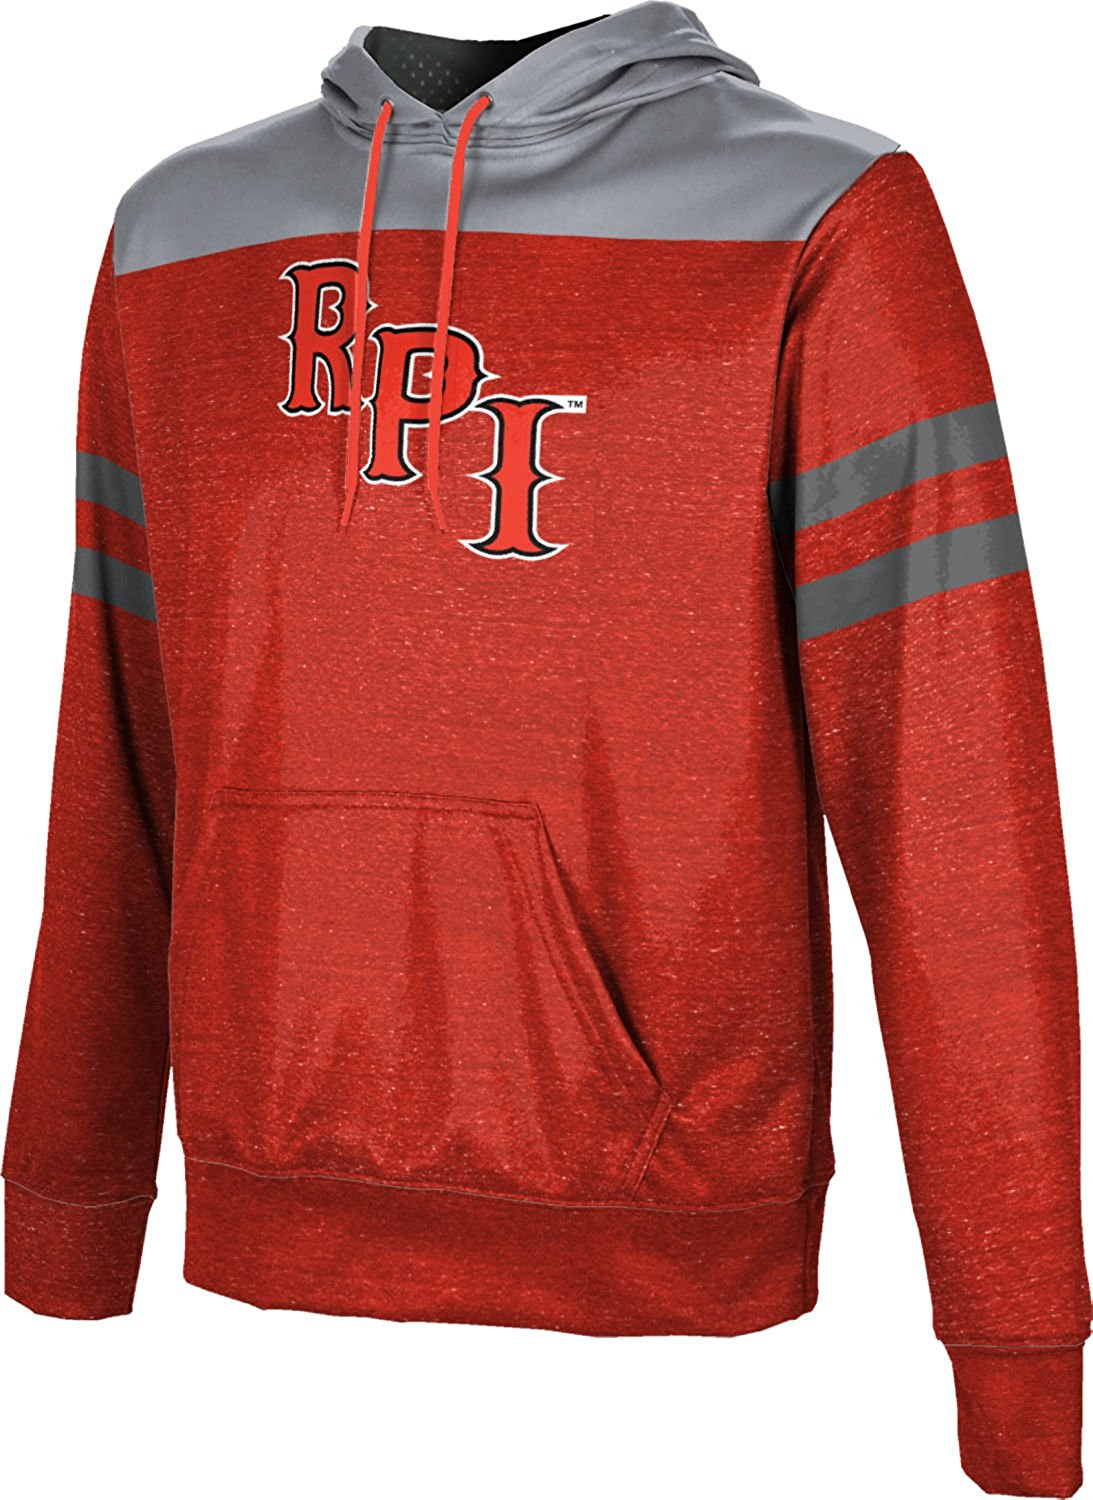 ProSphere Rensselaer Polytechnic Institute University Boys' Hoodie Sweatshirt - Gameday